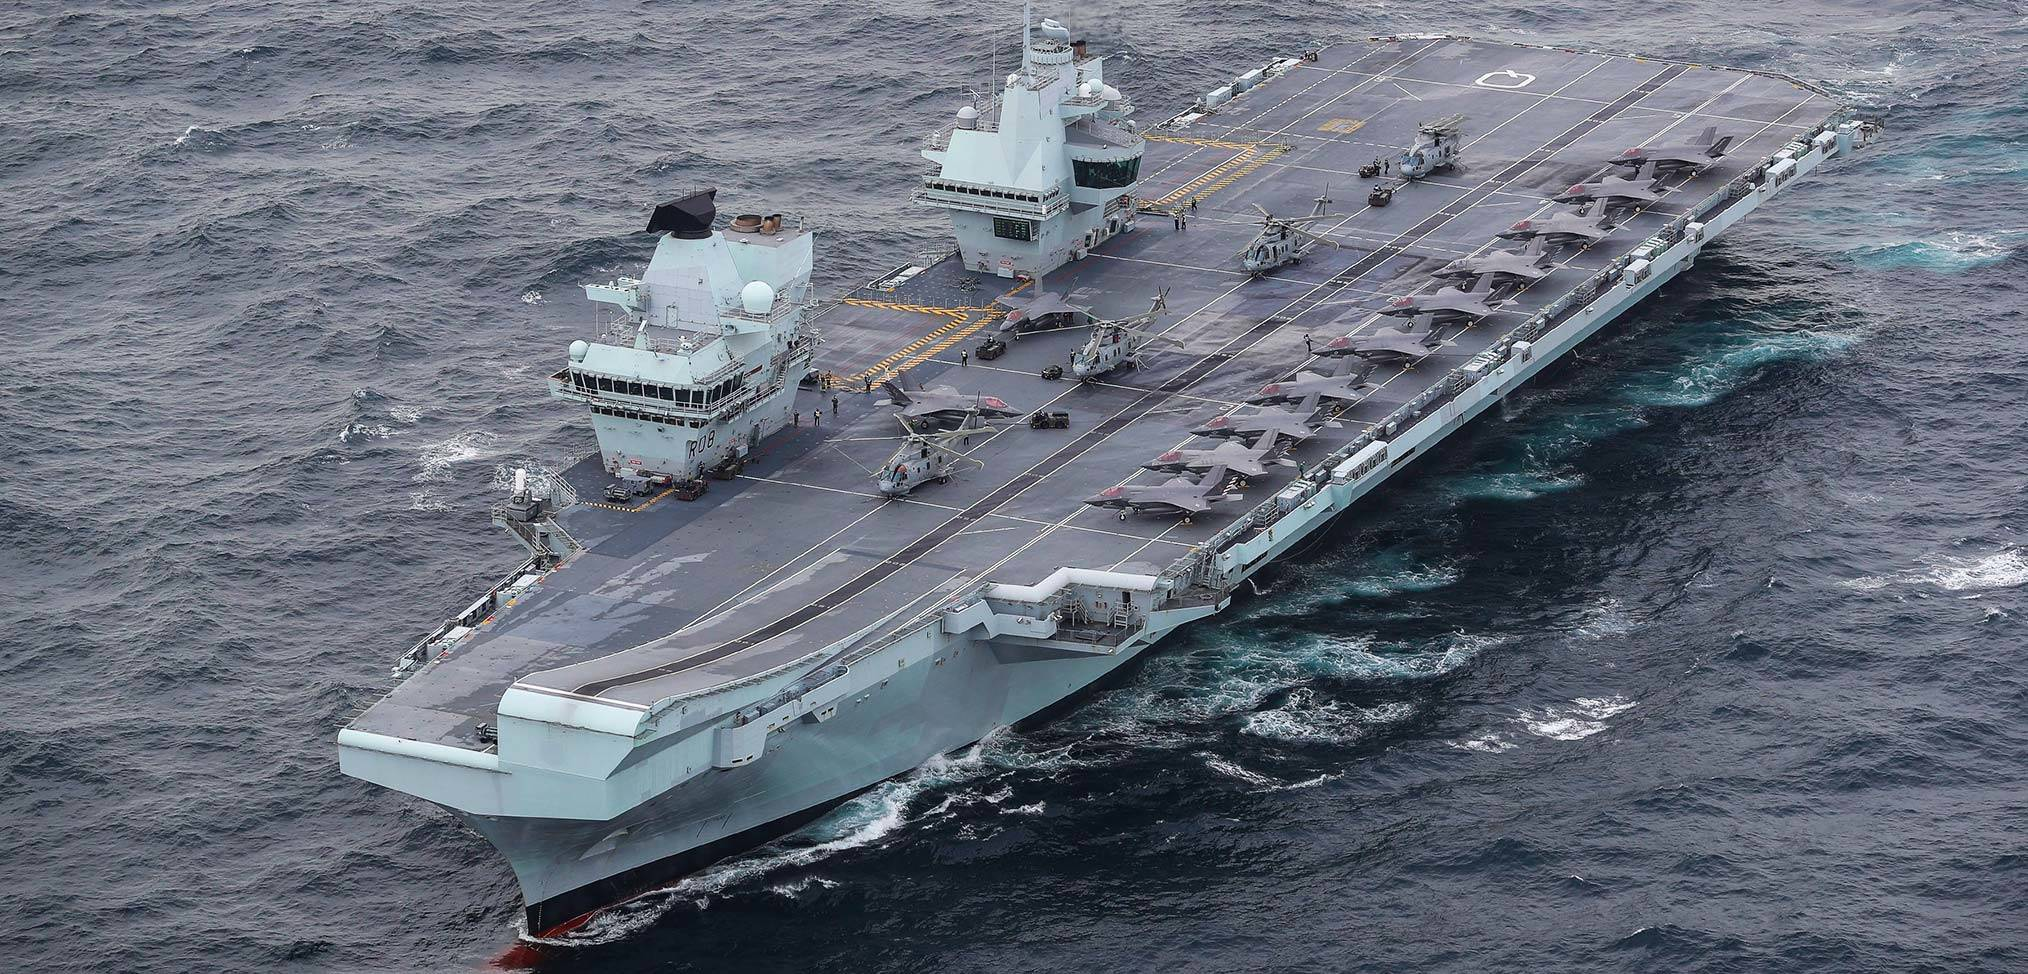 UK Carrier Strike Group declares Initial Operating Capability